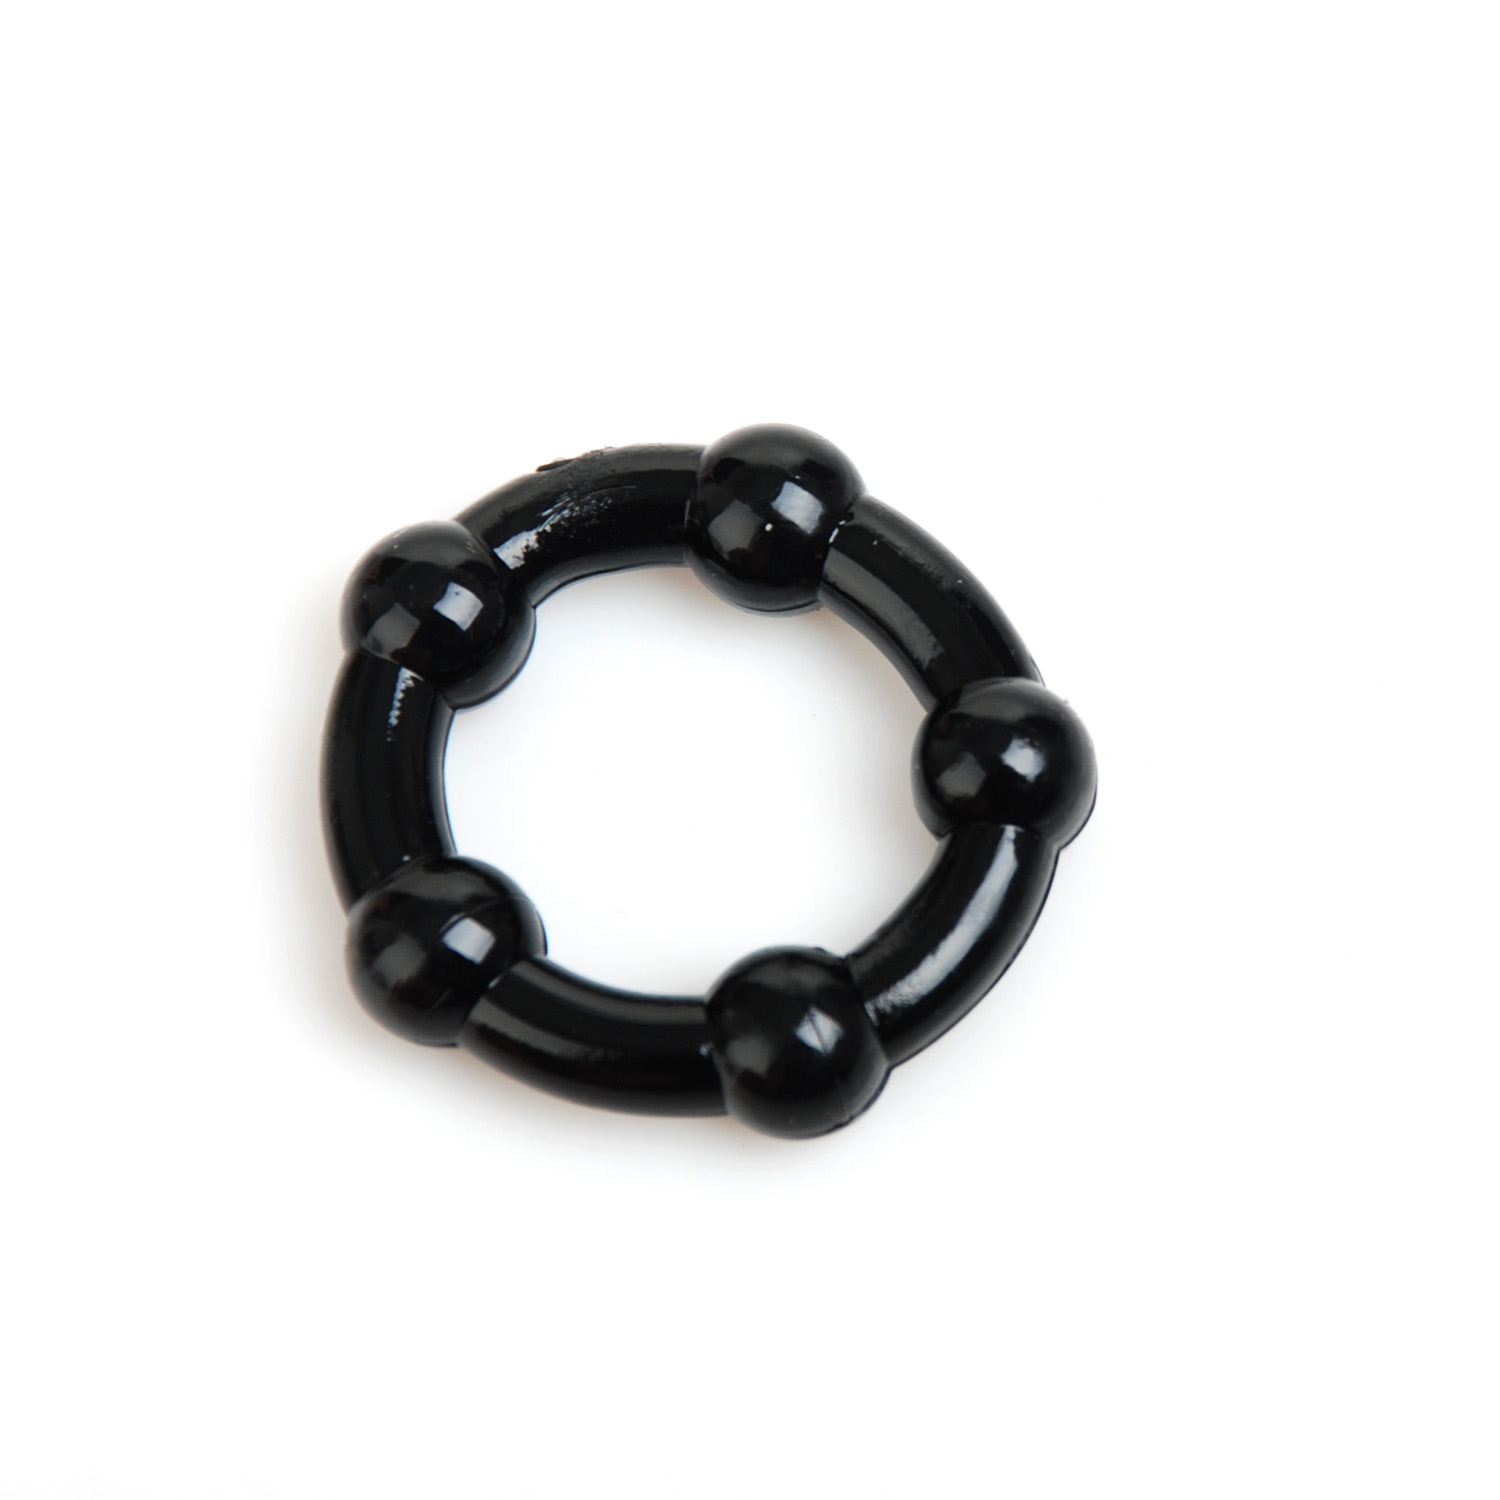 High Quality New Hot Silicone Cock Rings Delay Ejaculation Penis Rings Adult Sex Toys Sex Products For Men free shipping O35